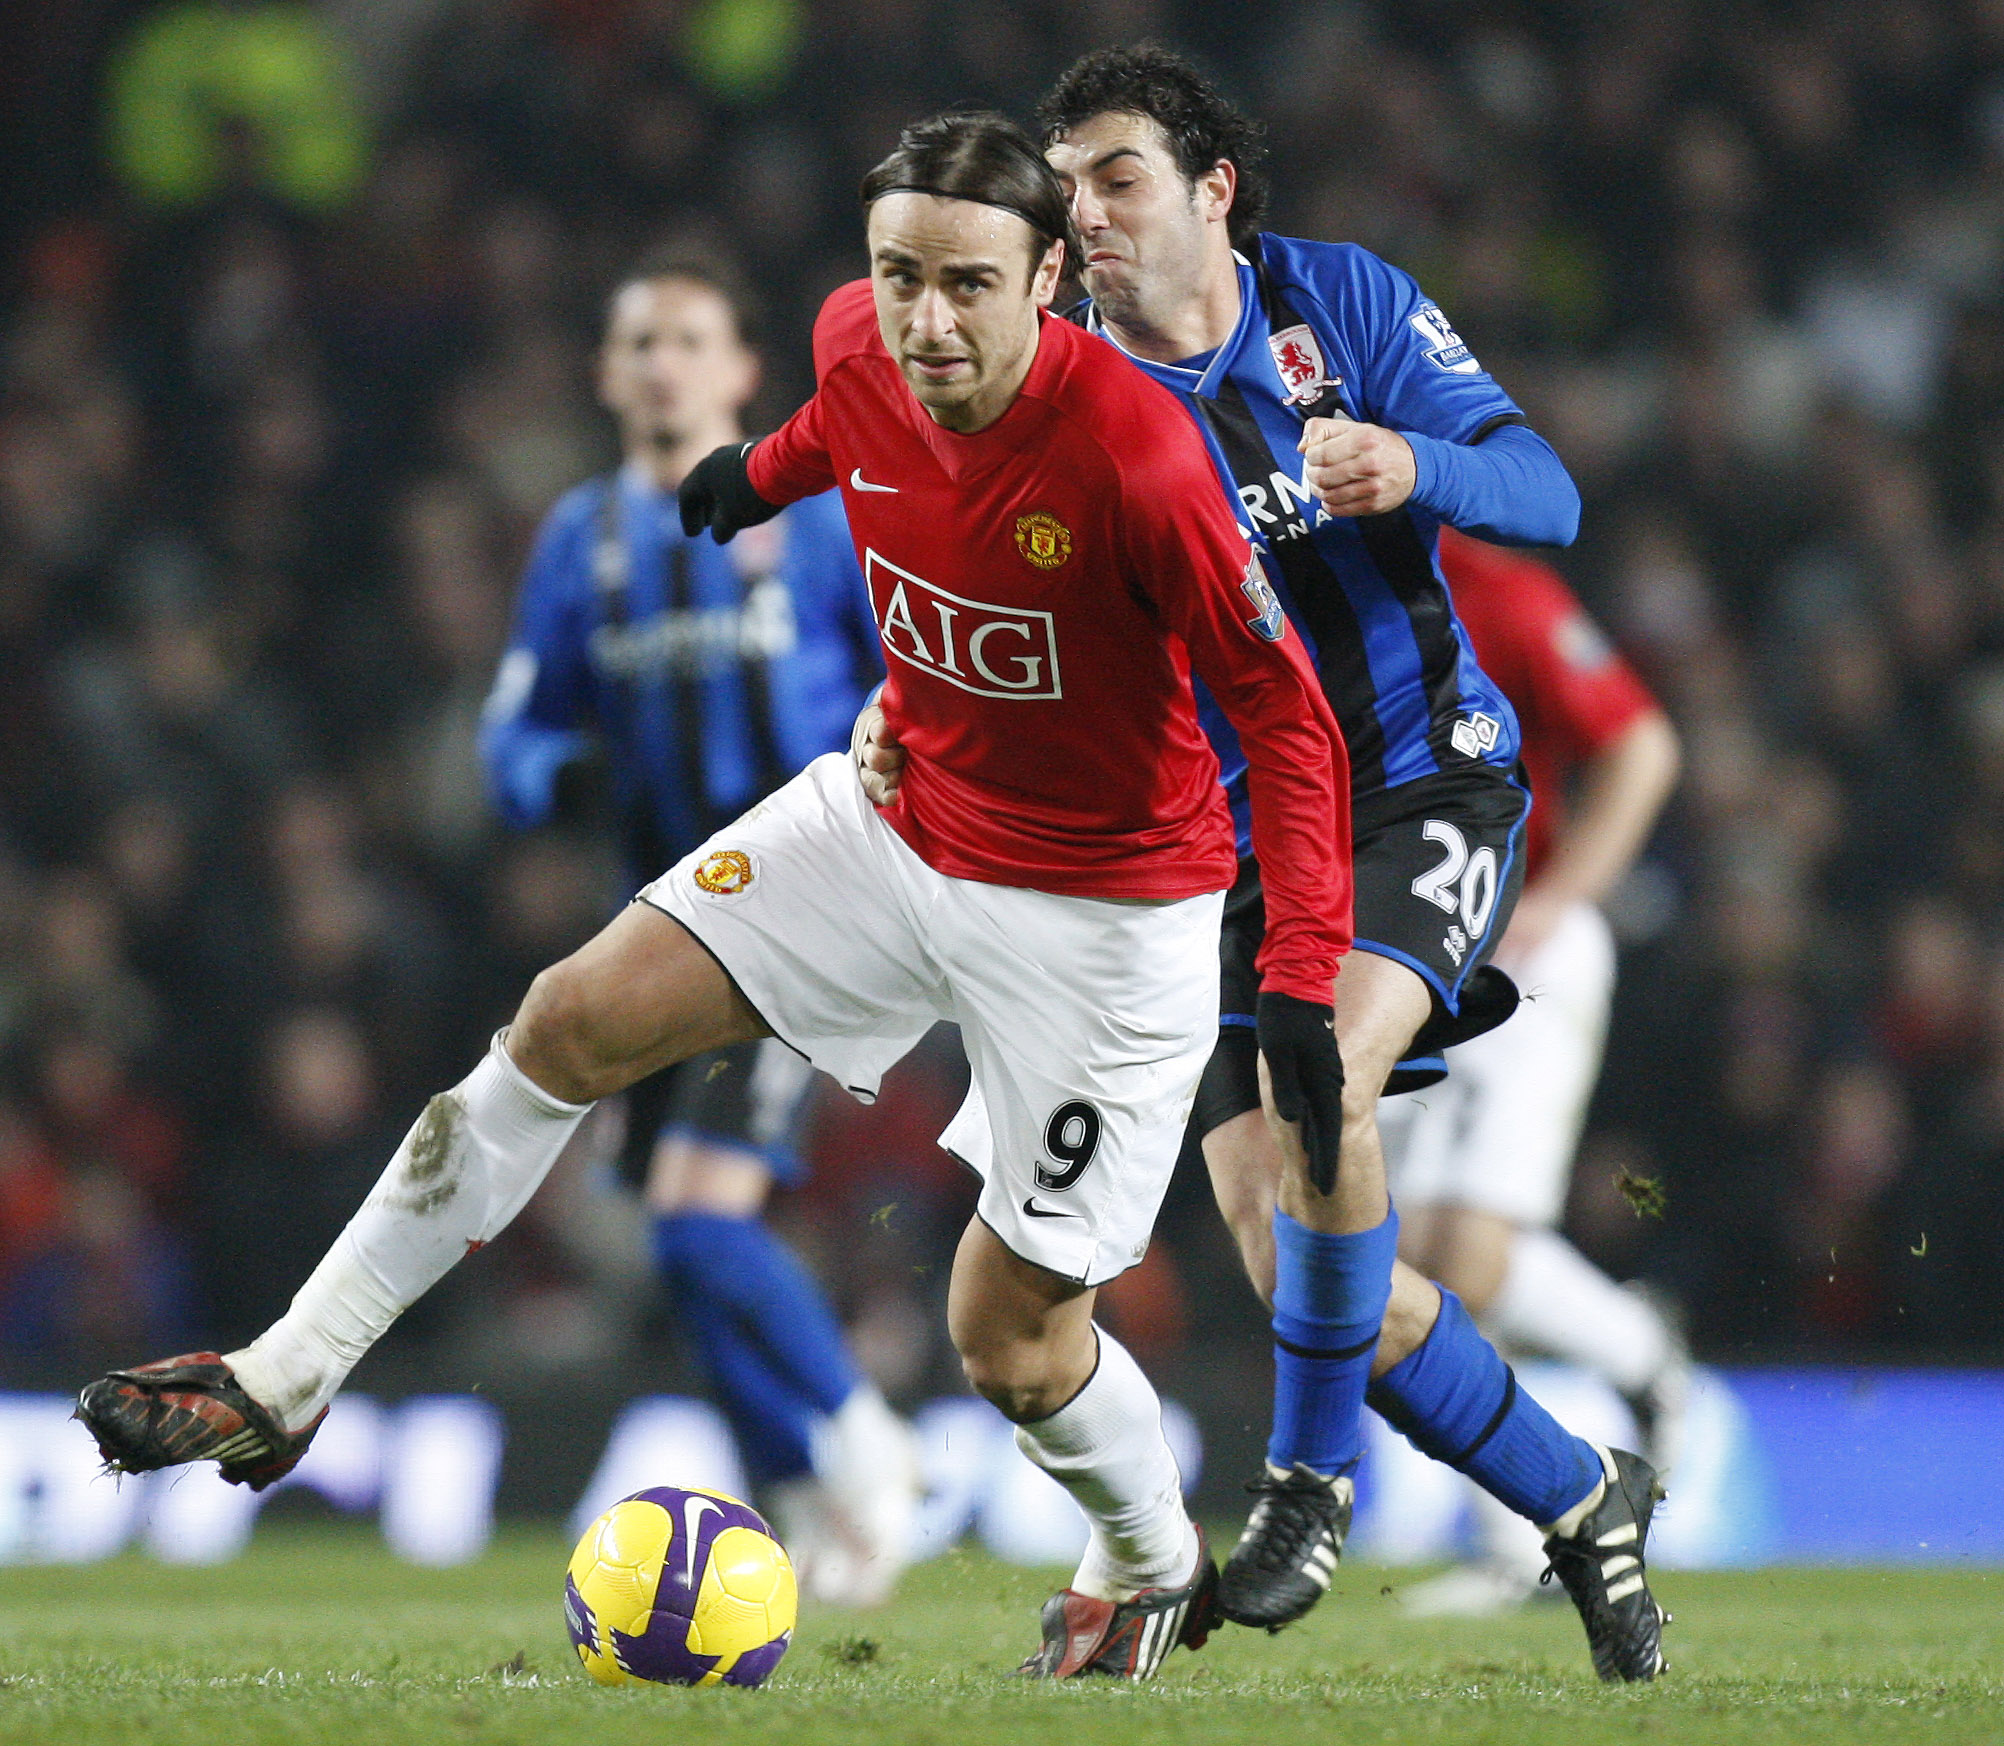 Manchester United's Dimitar Berbatov, left, keeps the ball from Middlesbrough's Julio Arca during their English Premier League soccer match at Old Tra...